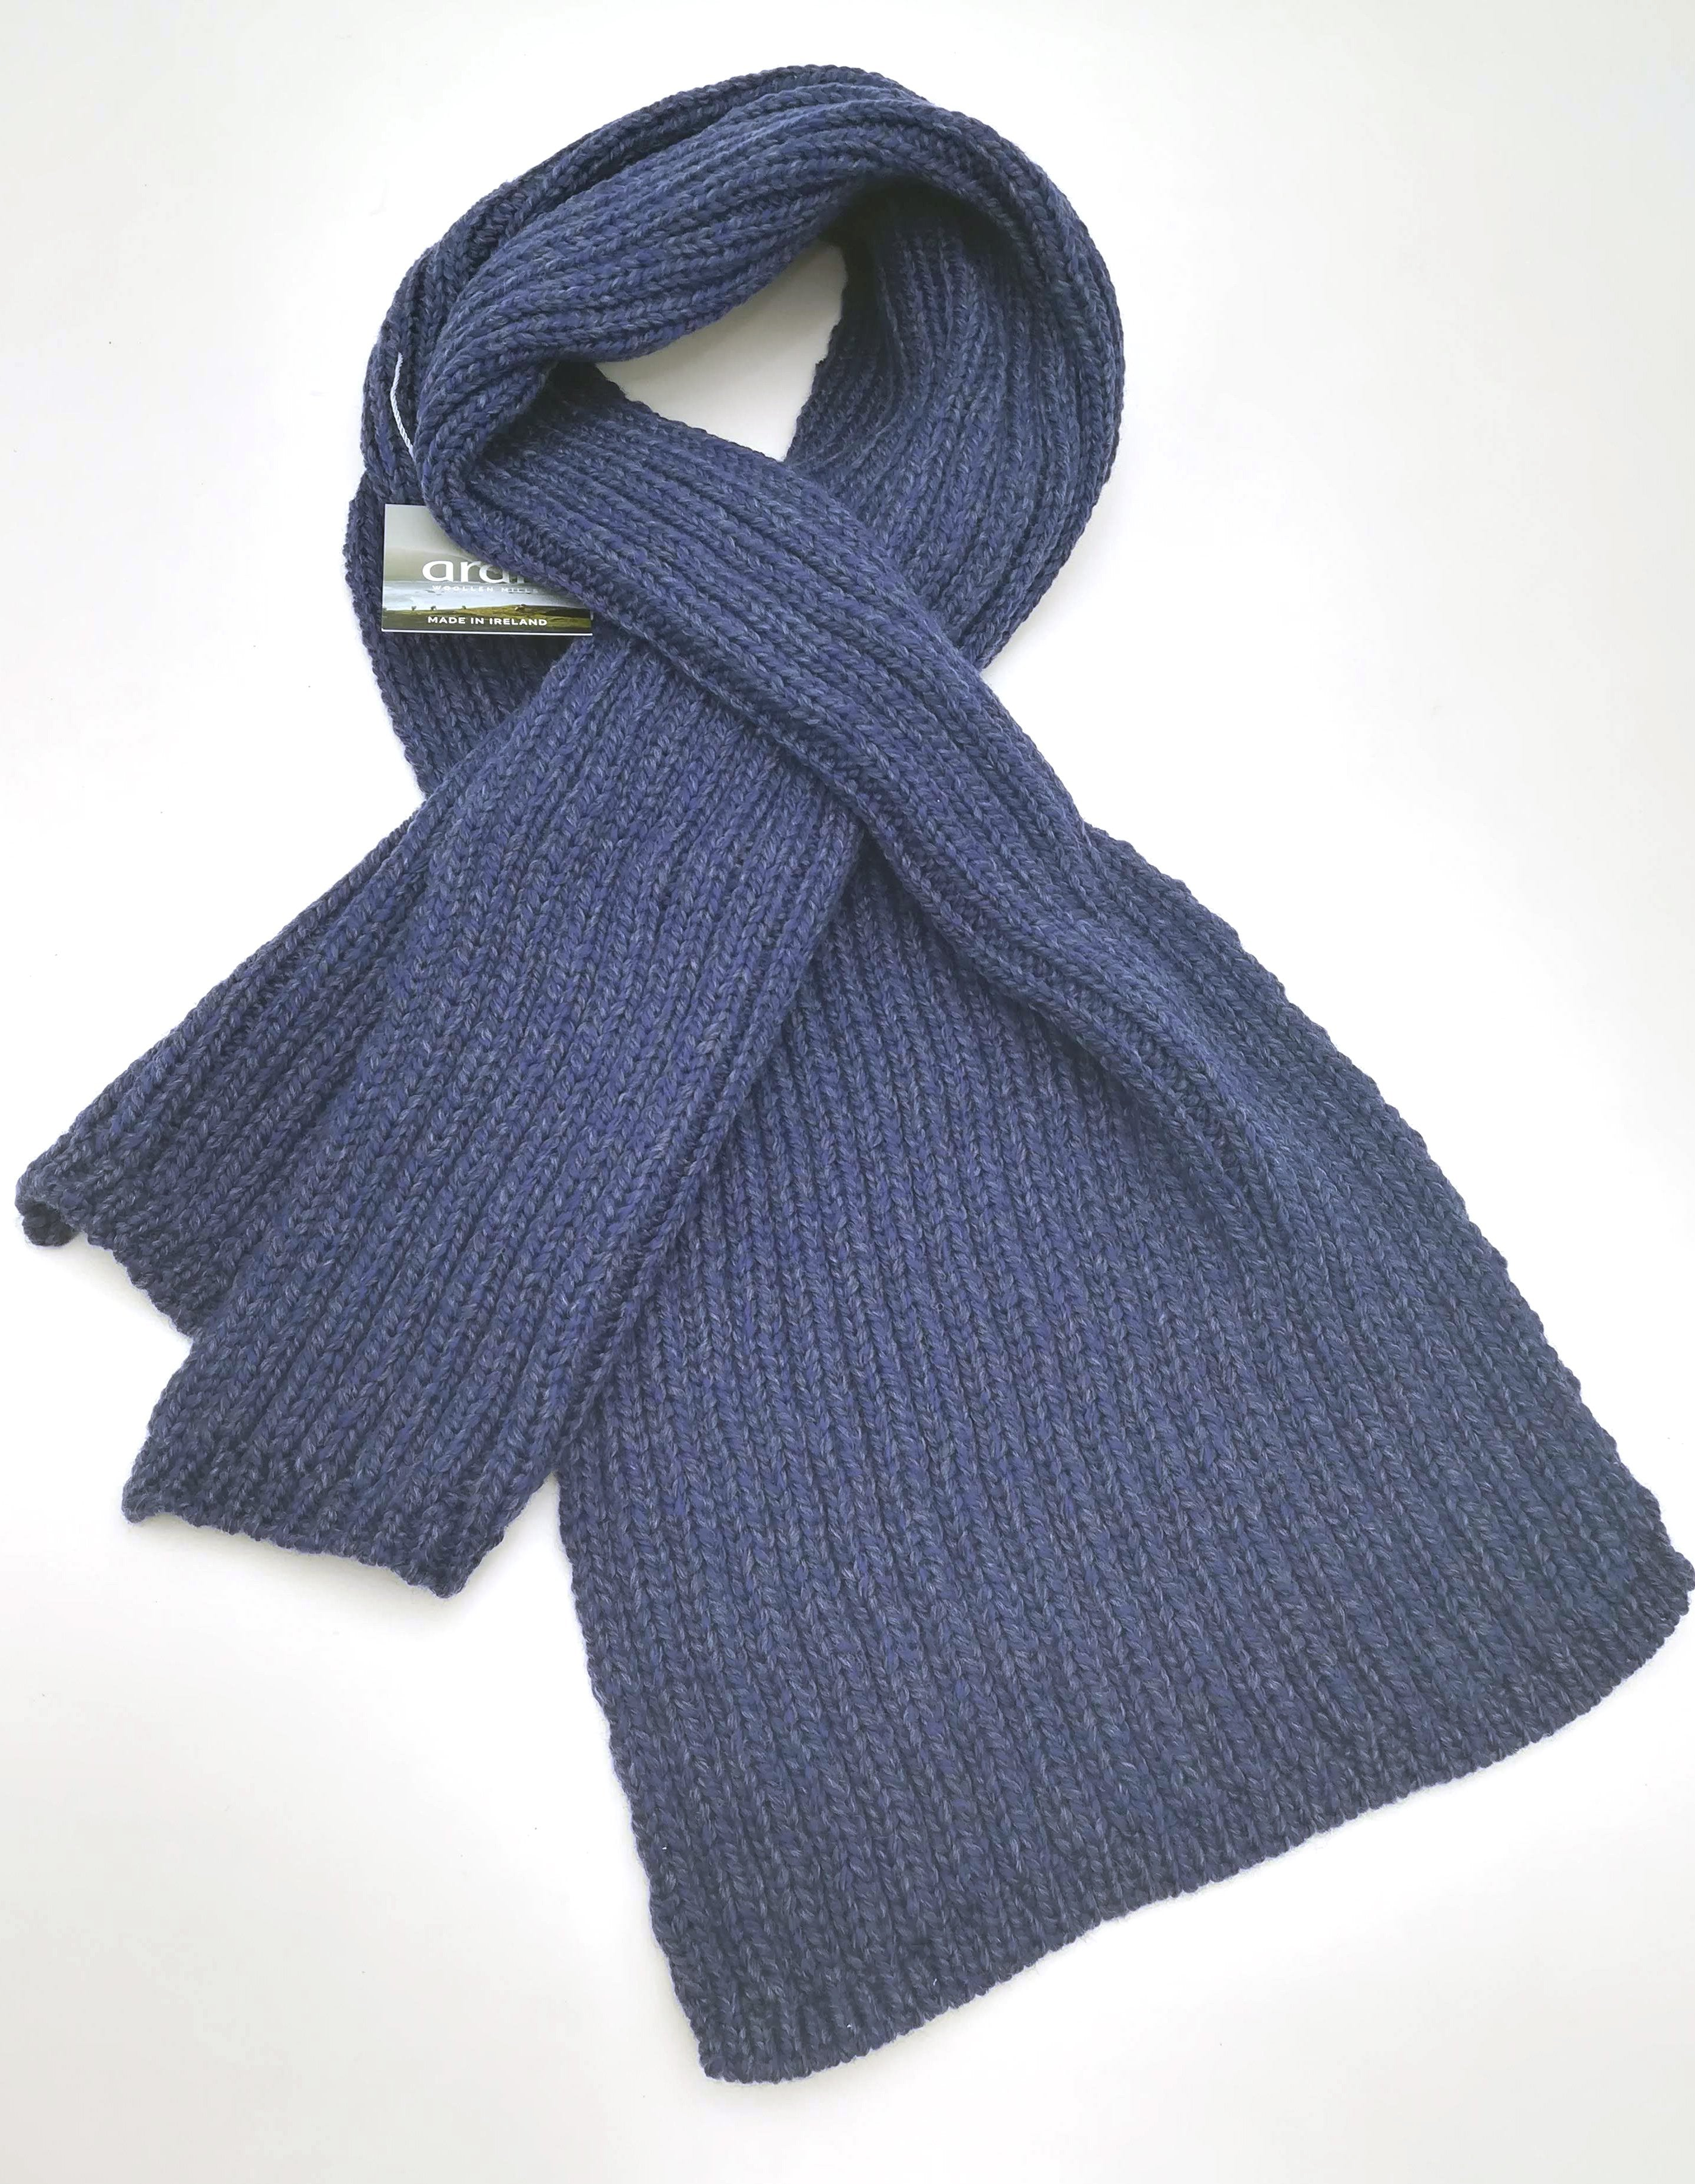 Super soft rib knit pull through Scarf. This is the softest accessory you could imagine so cosy and warm also.   Puremerino wool